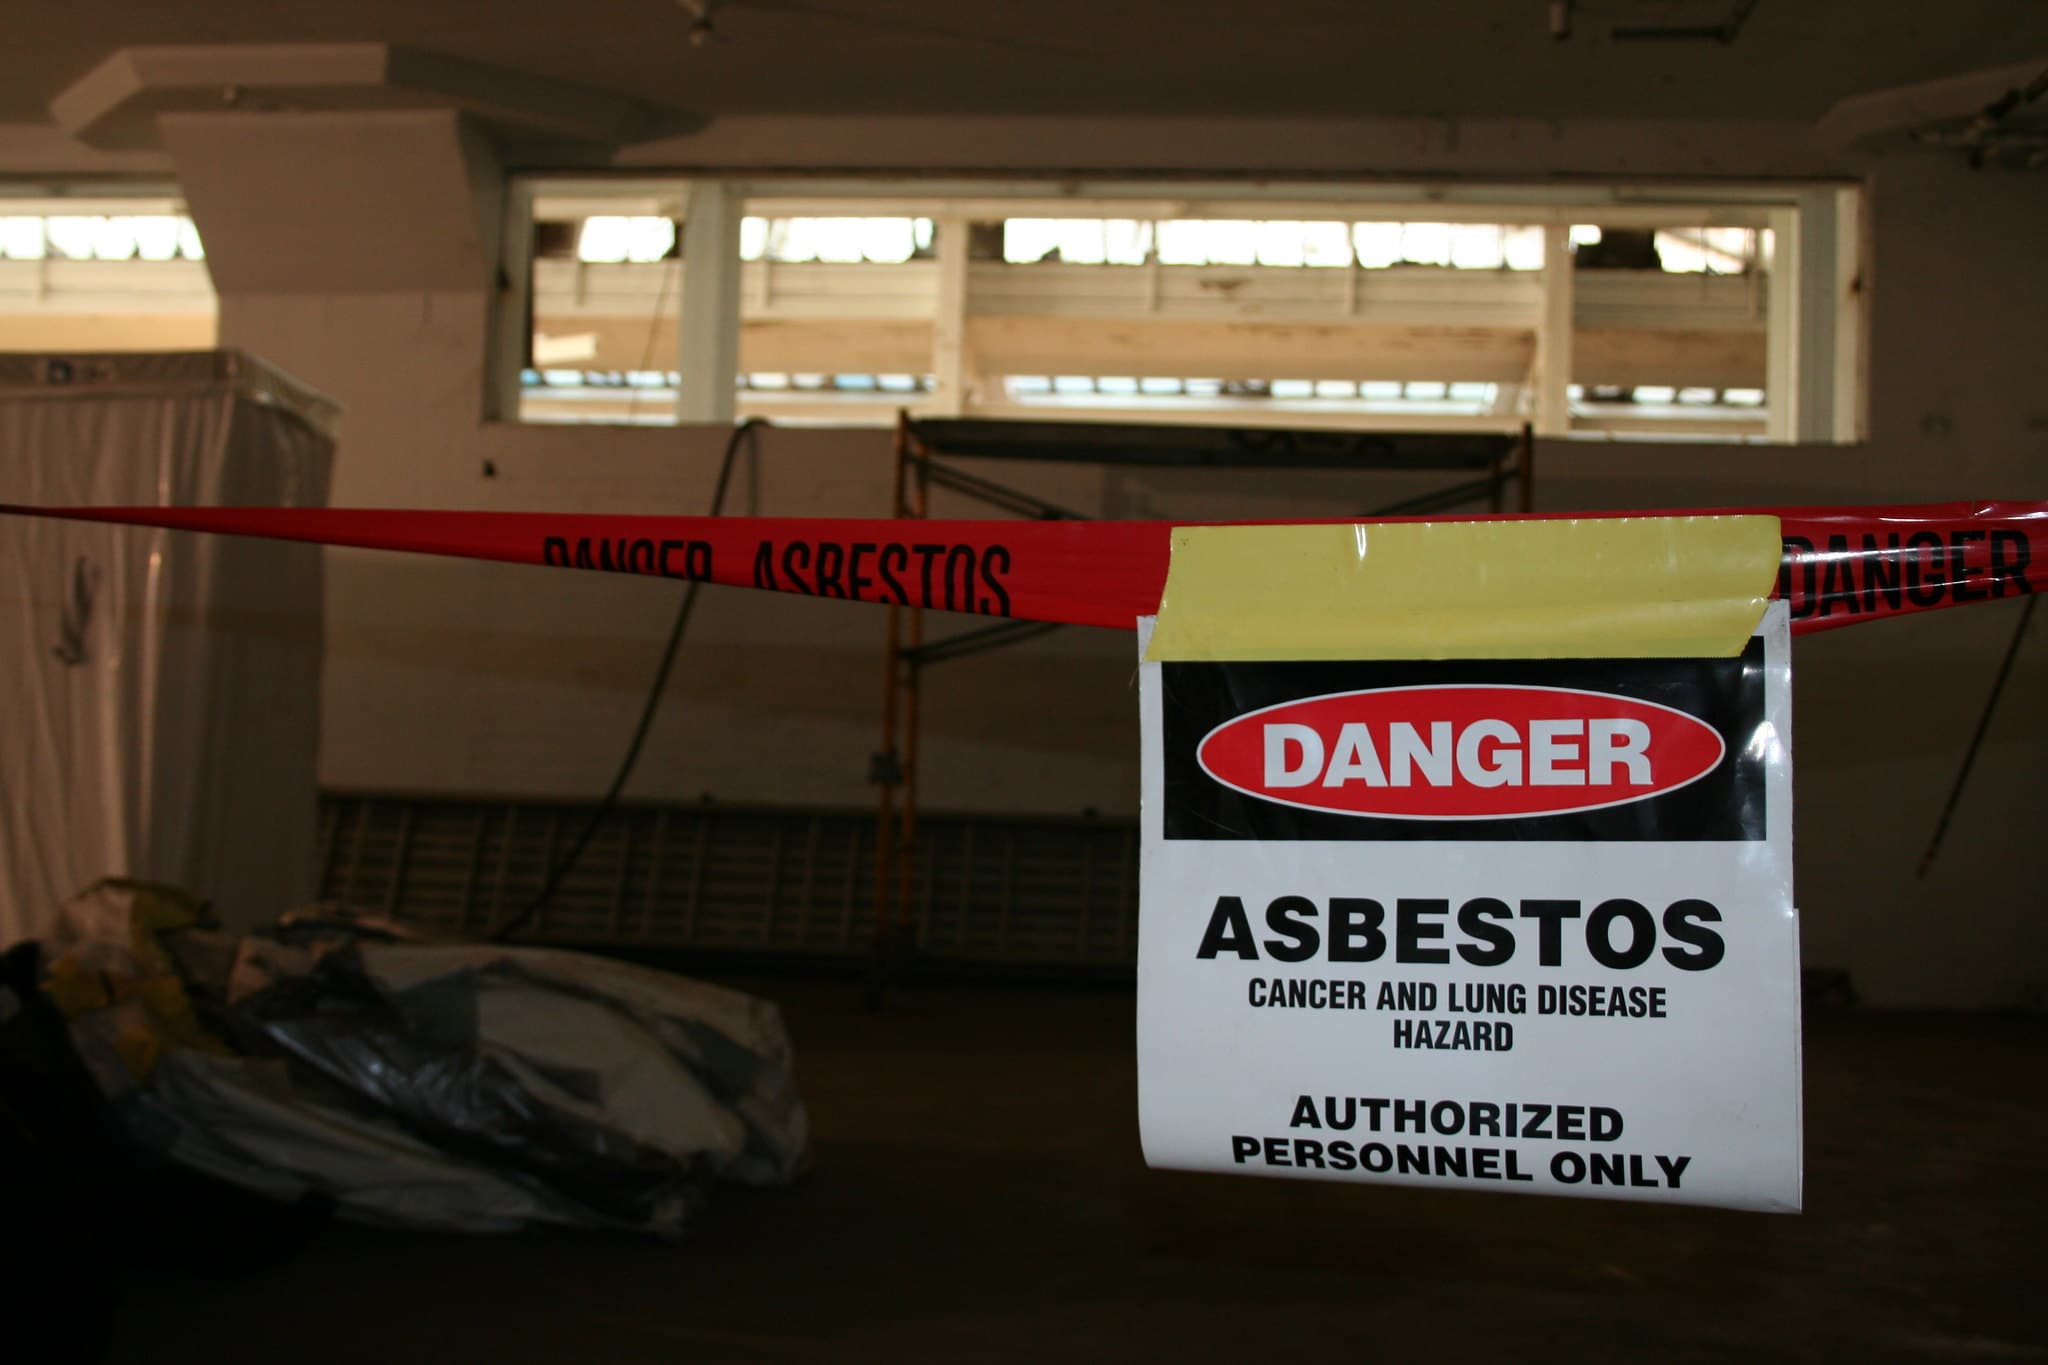 What You Need to Know about the Dangers of Asbestos